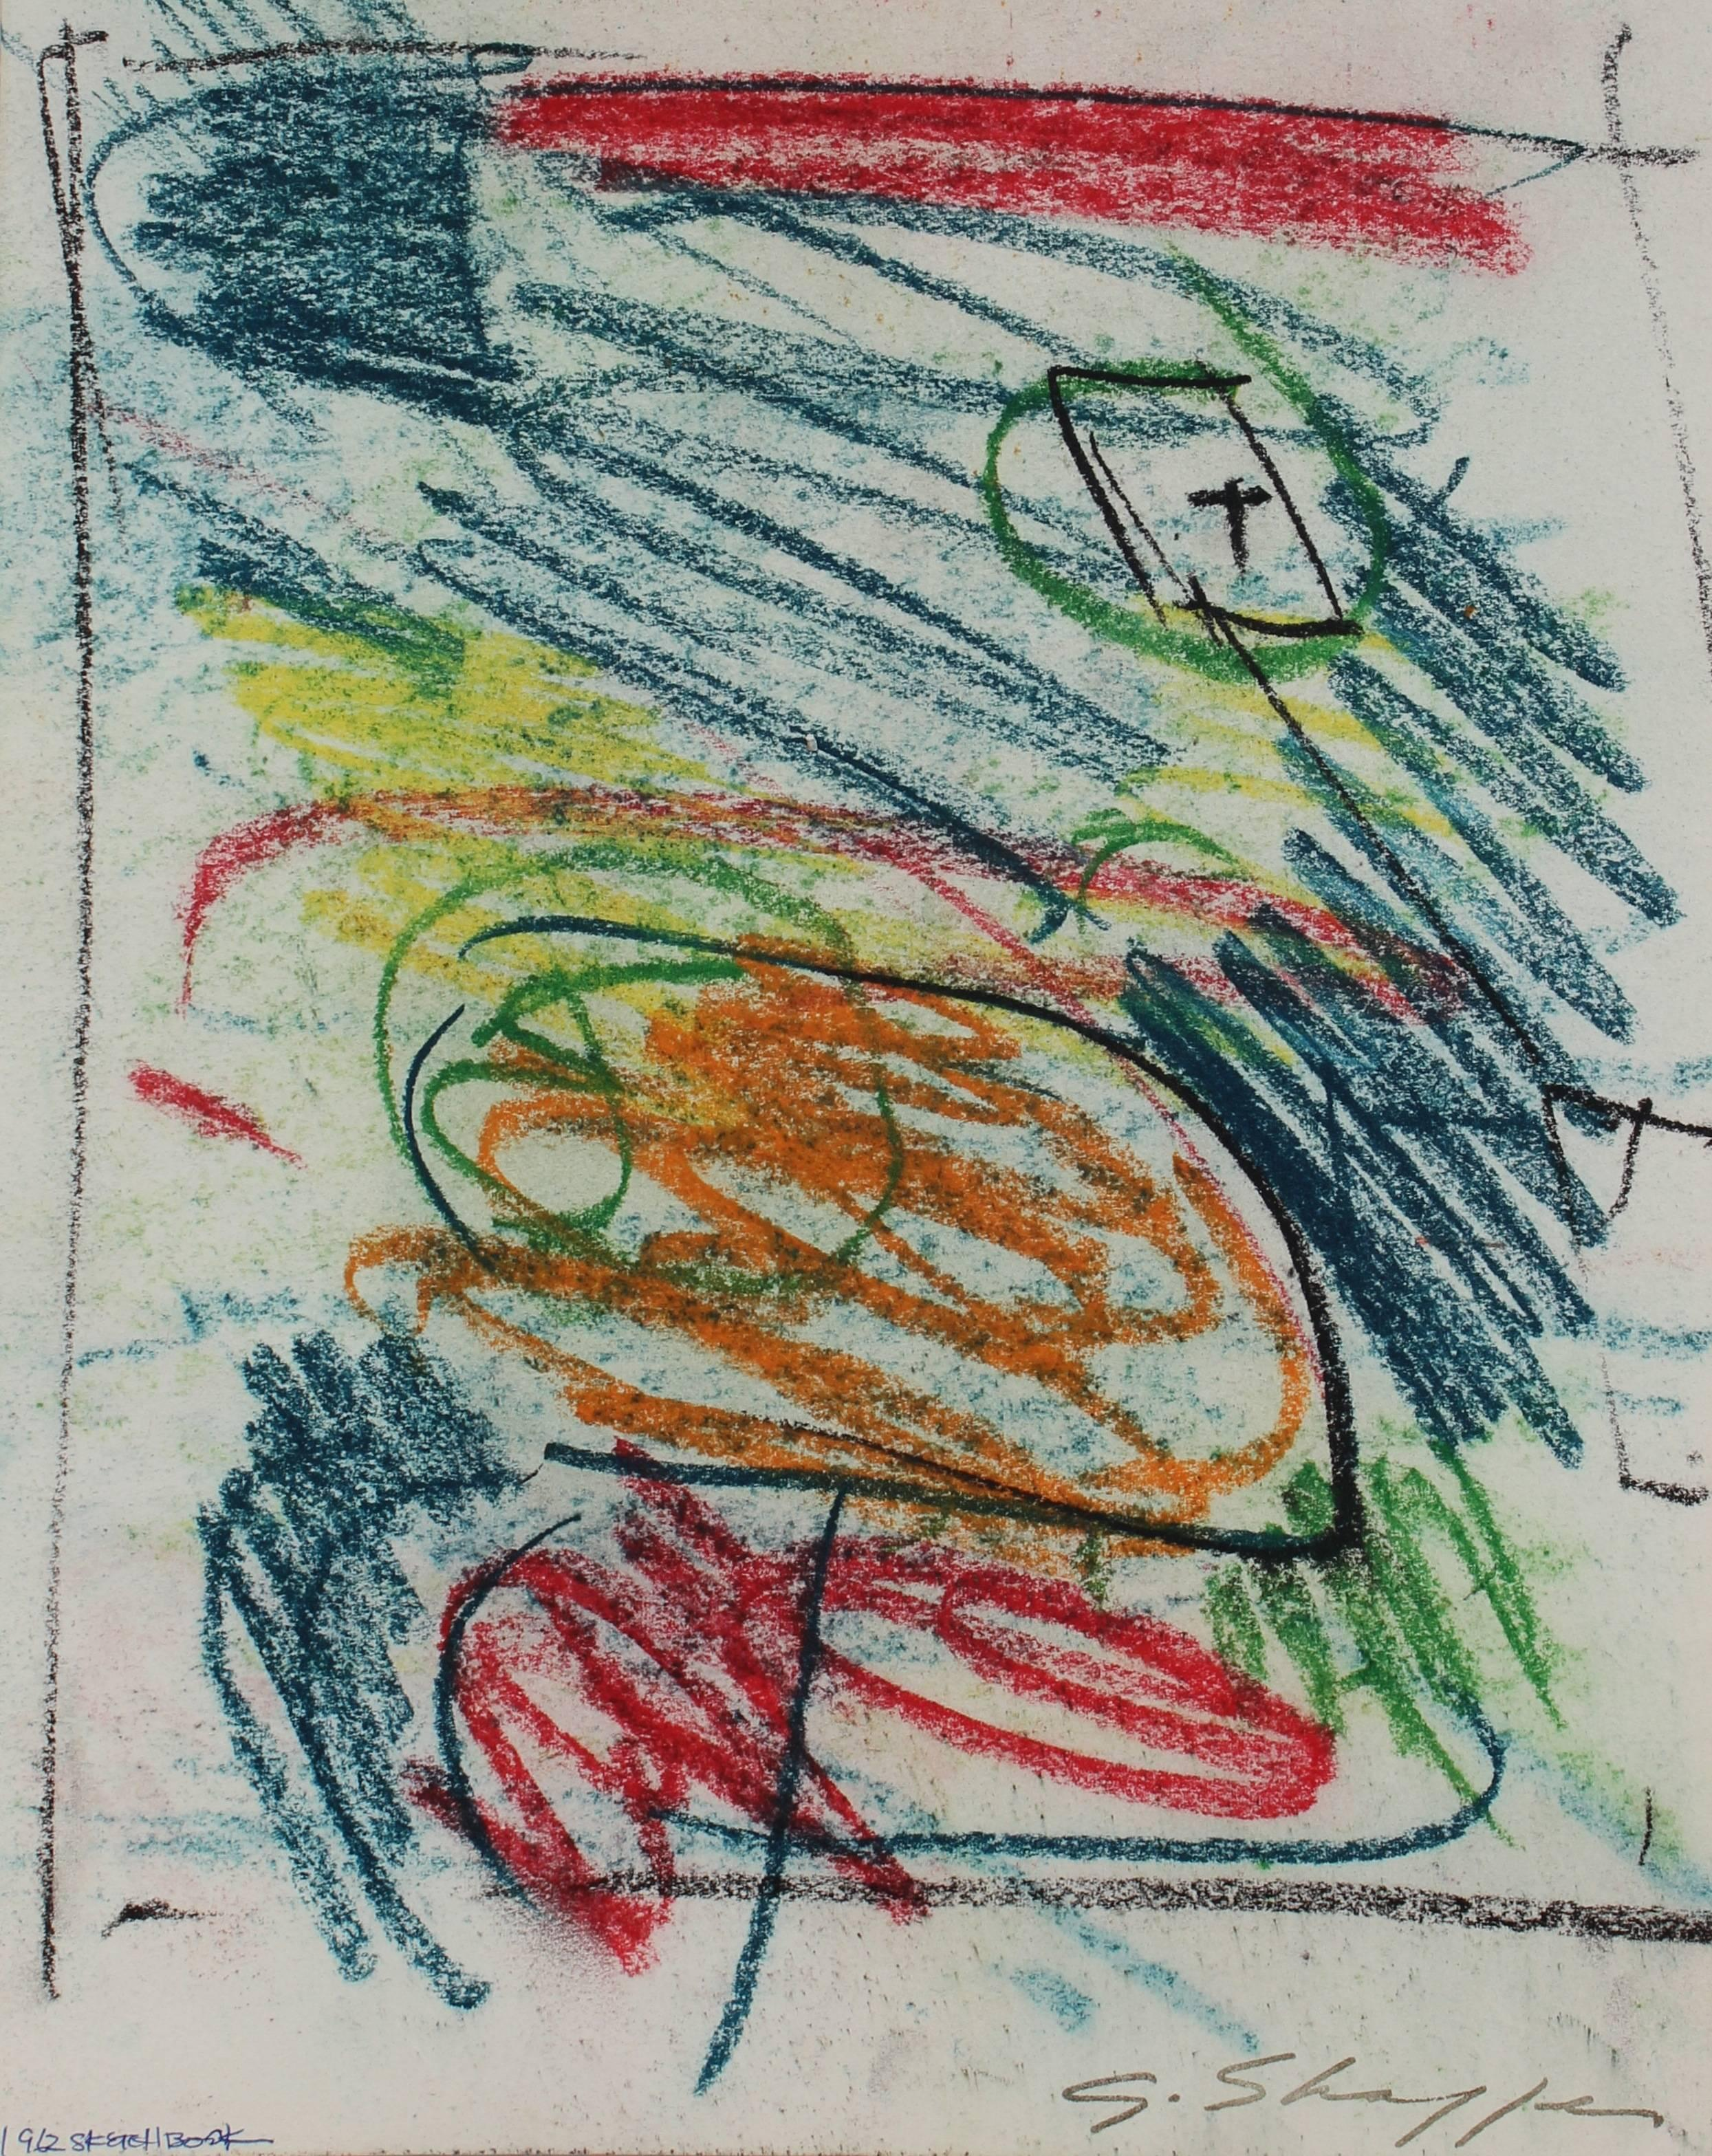 Abstract Expressionist Sketch in Pastel, 1962